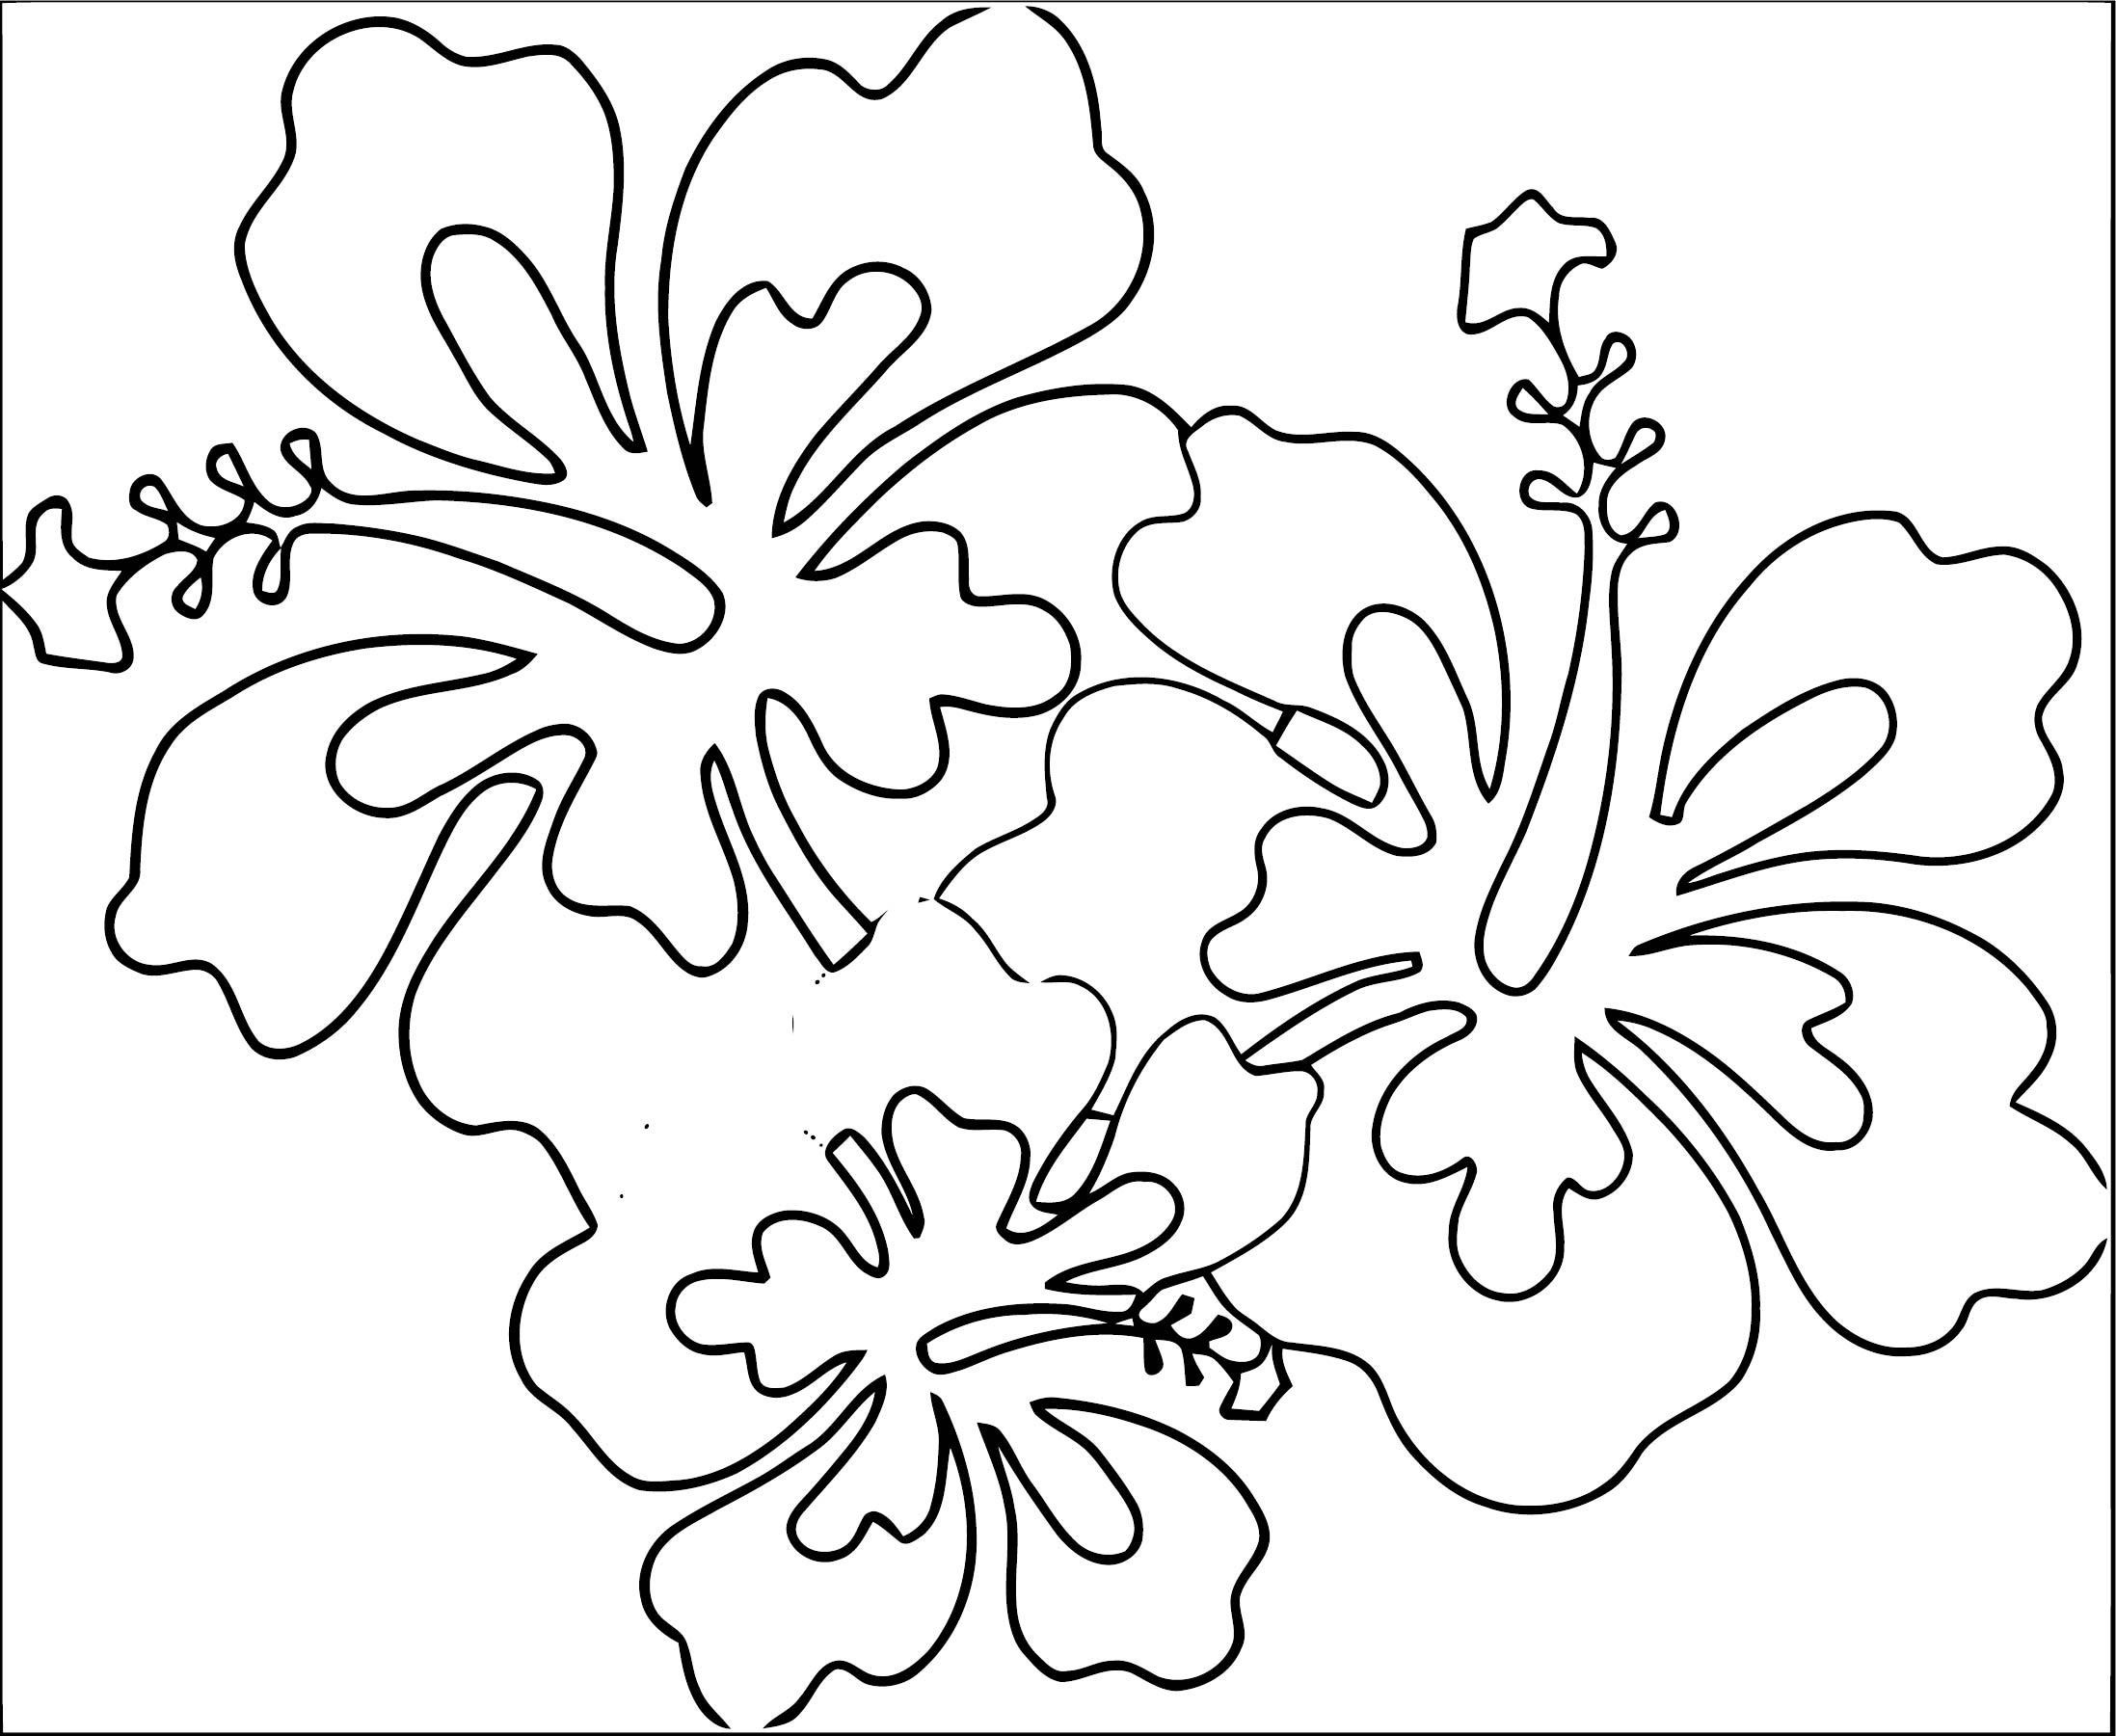 Hawaii Flower Coloring Page 2 Wecoloringpage